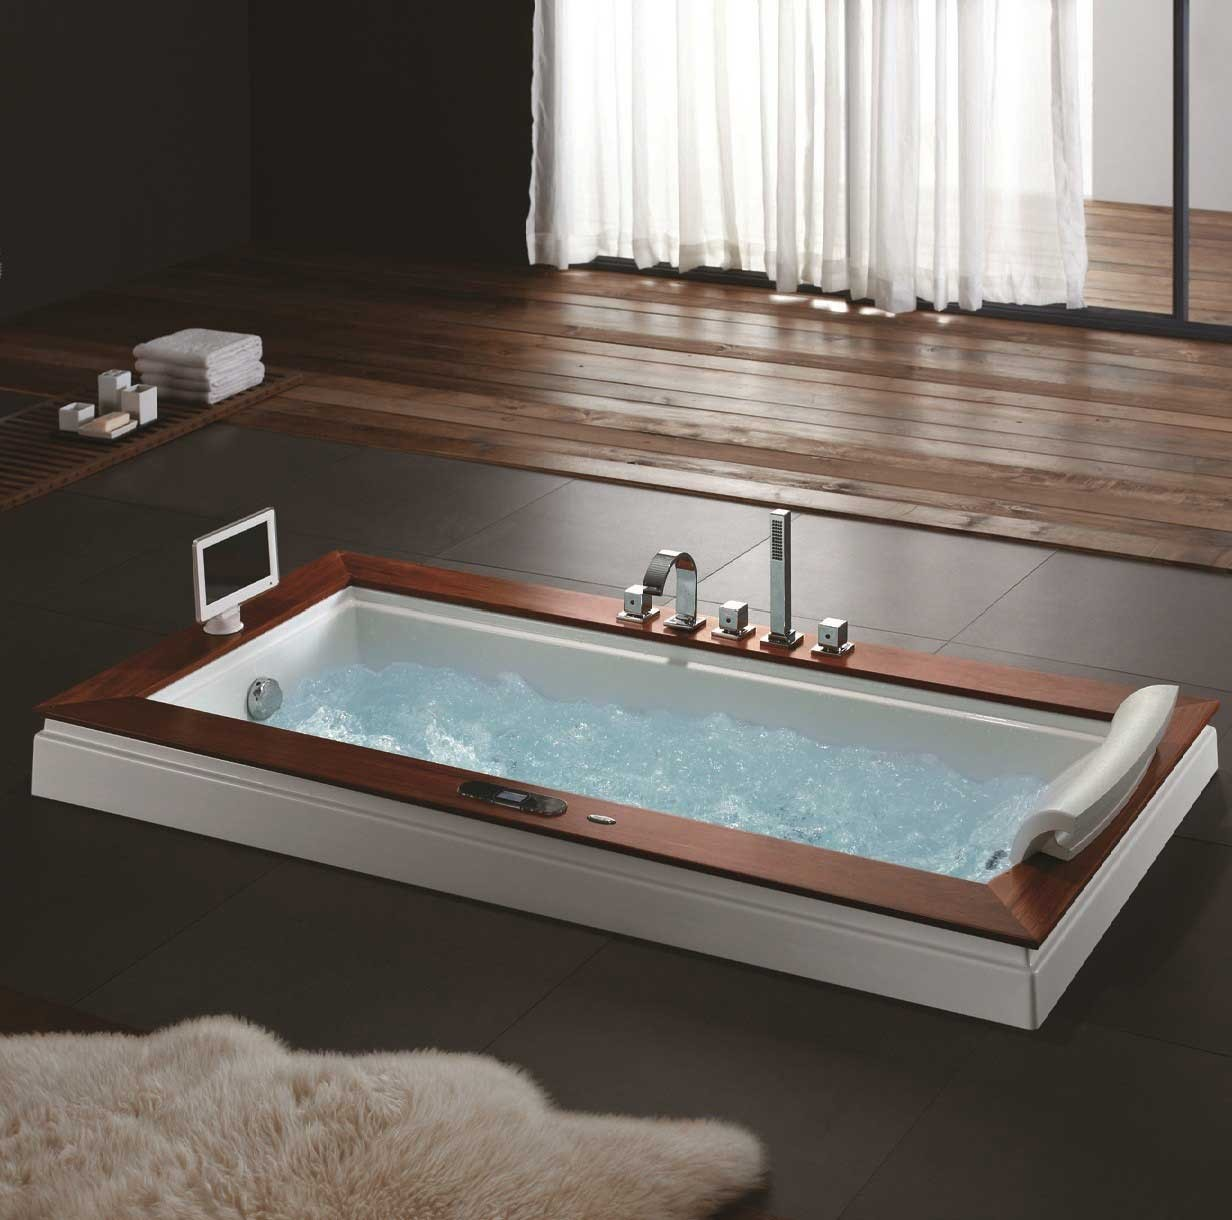 Elegant Madison Luxury Whirlpool Tub Madison Luxury Whirlpool Tub